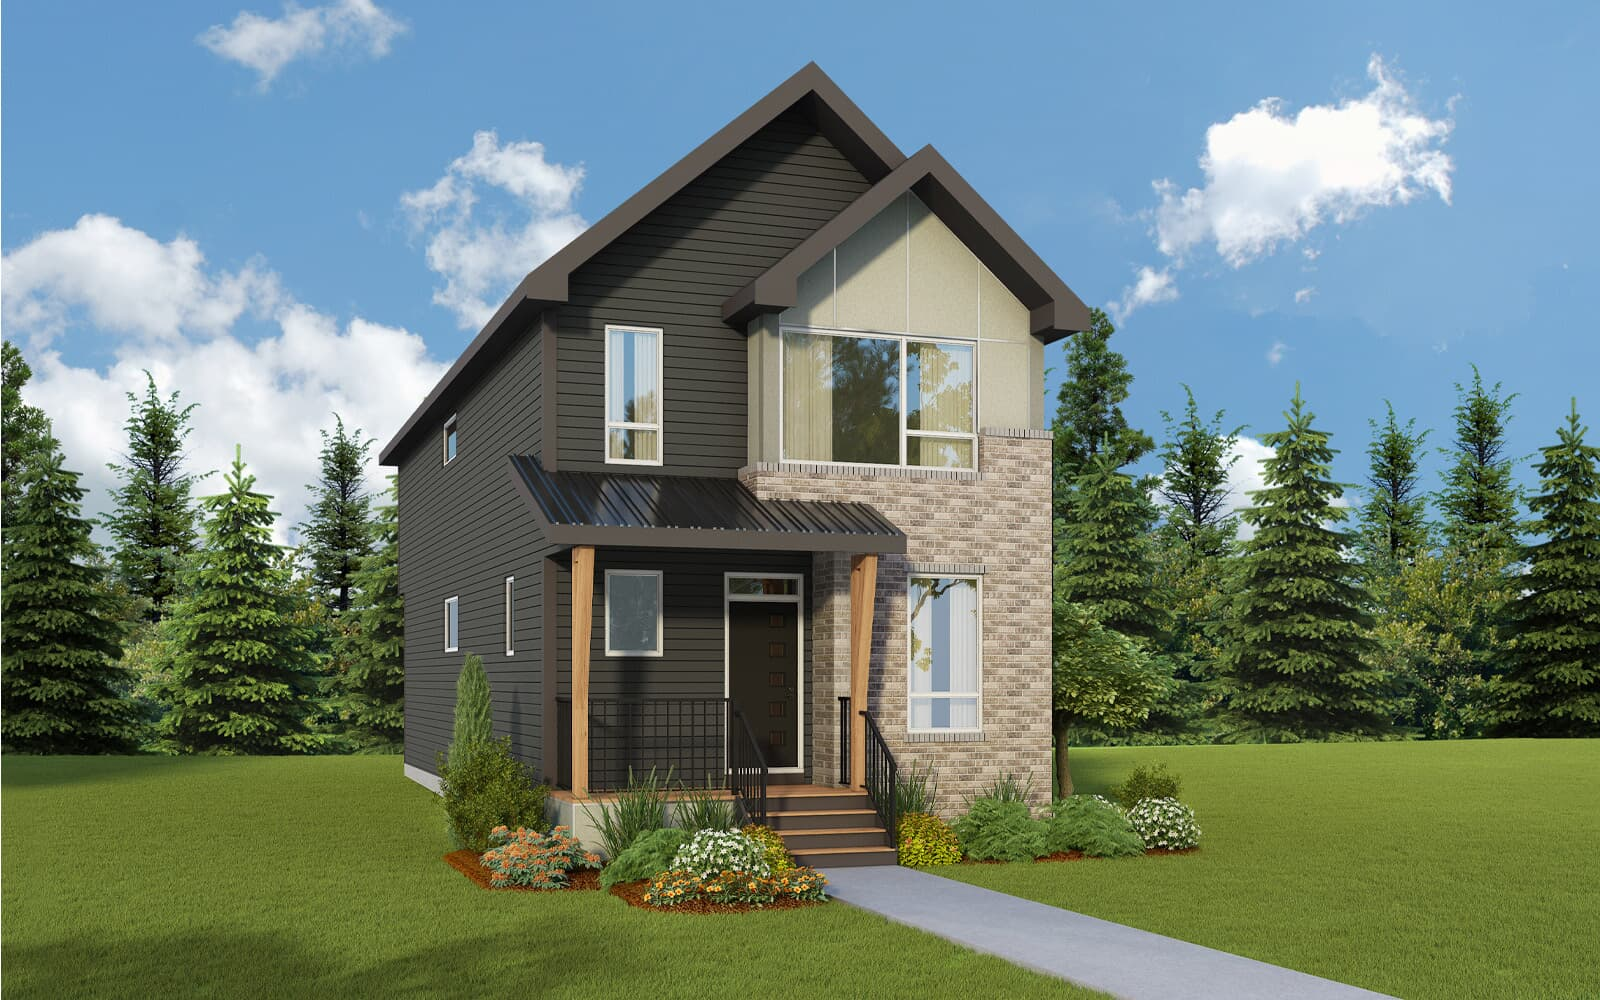 model-84-lv4-contemporary-carlisleii-calgary